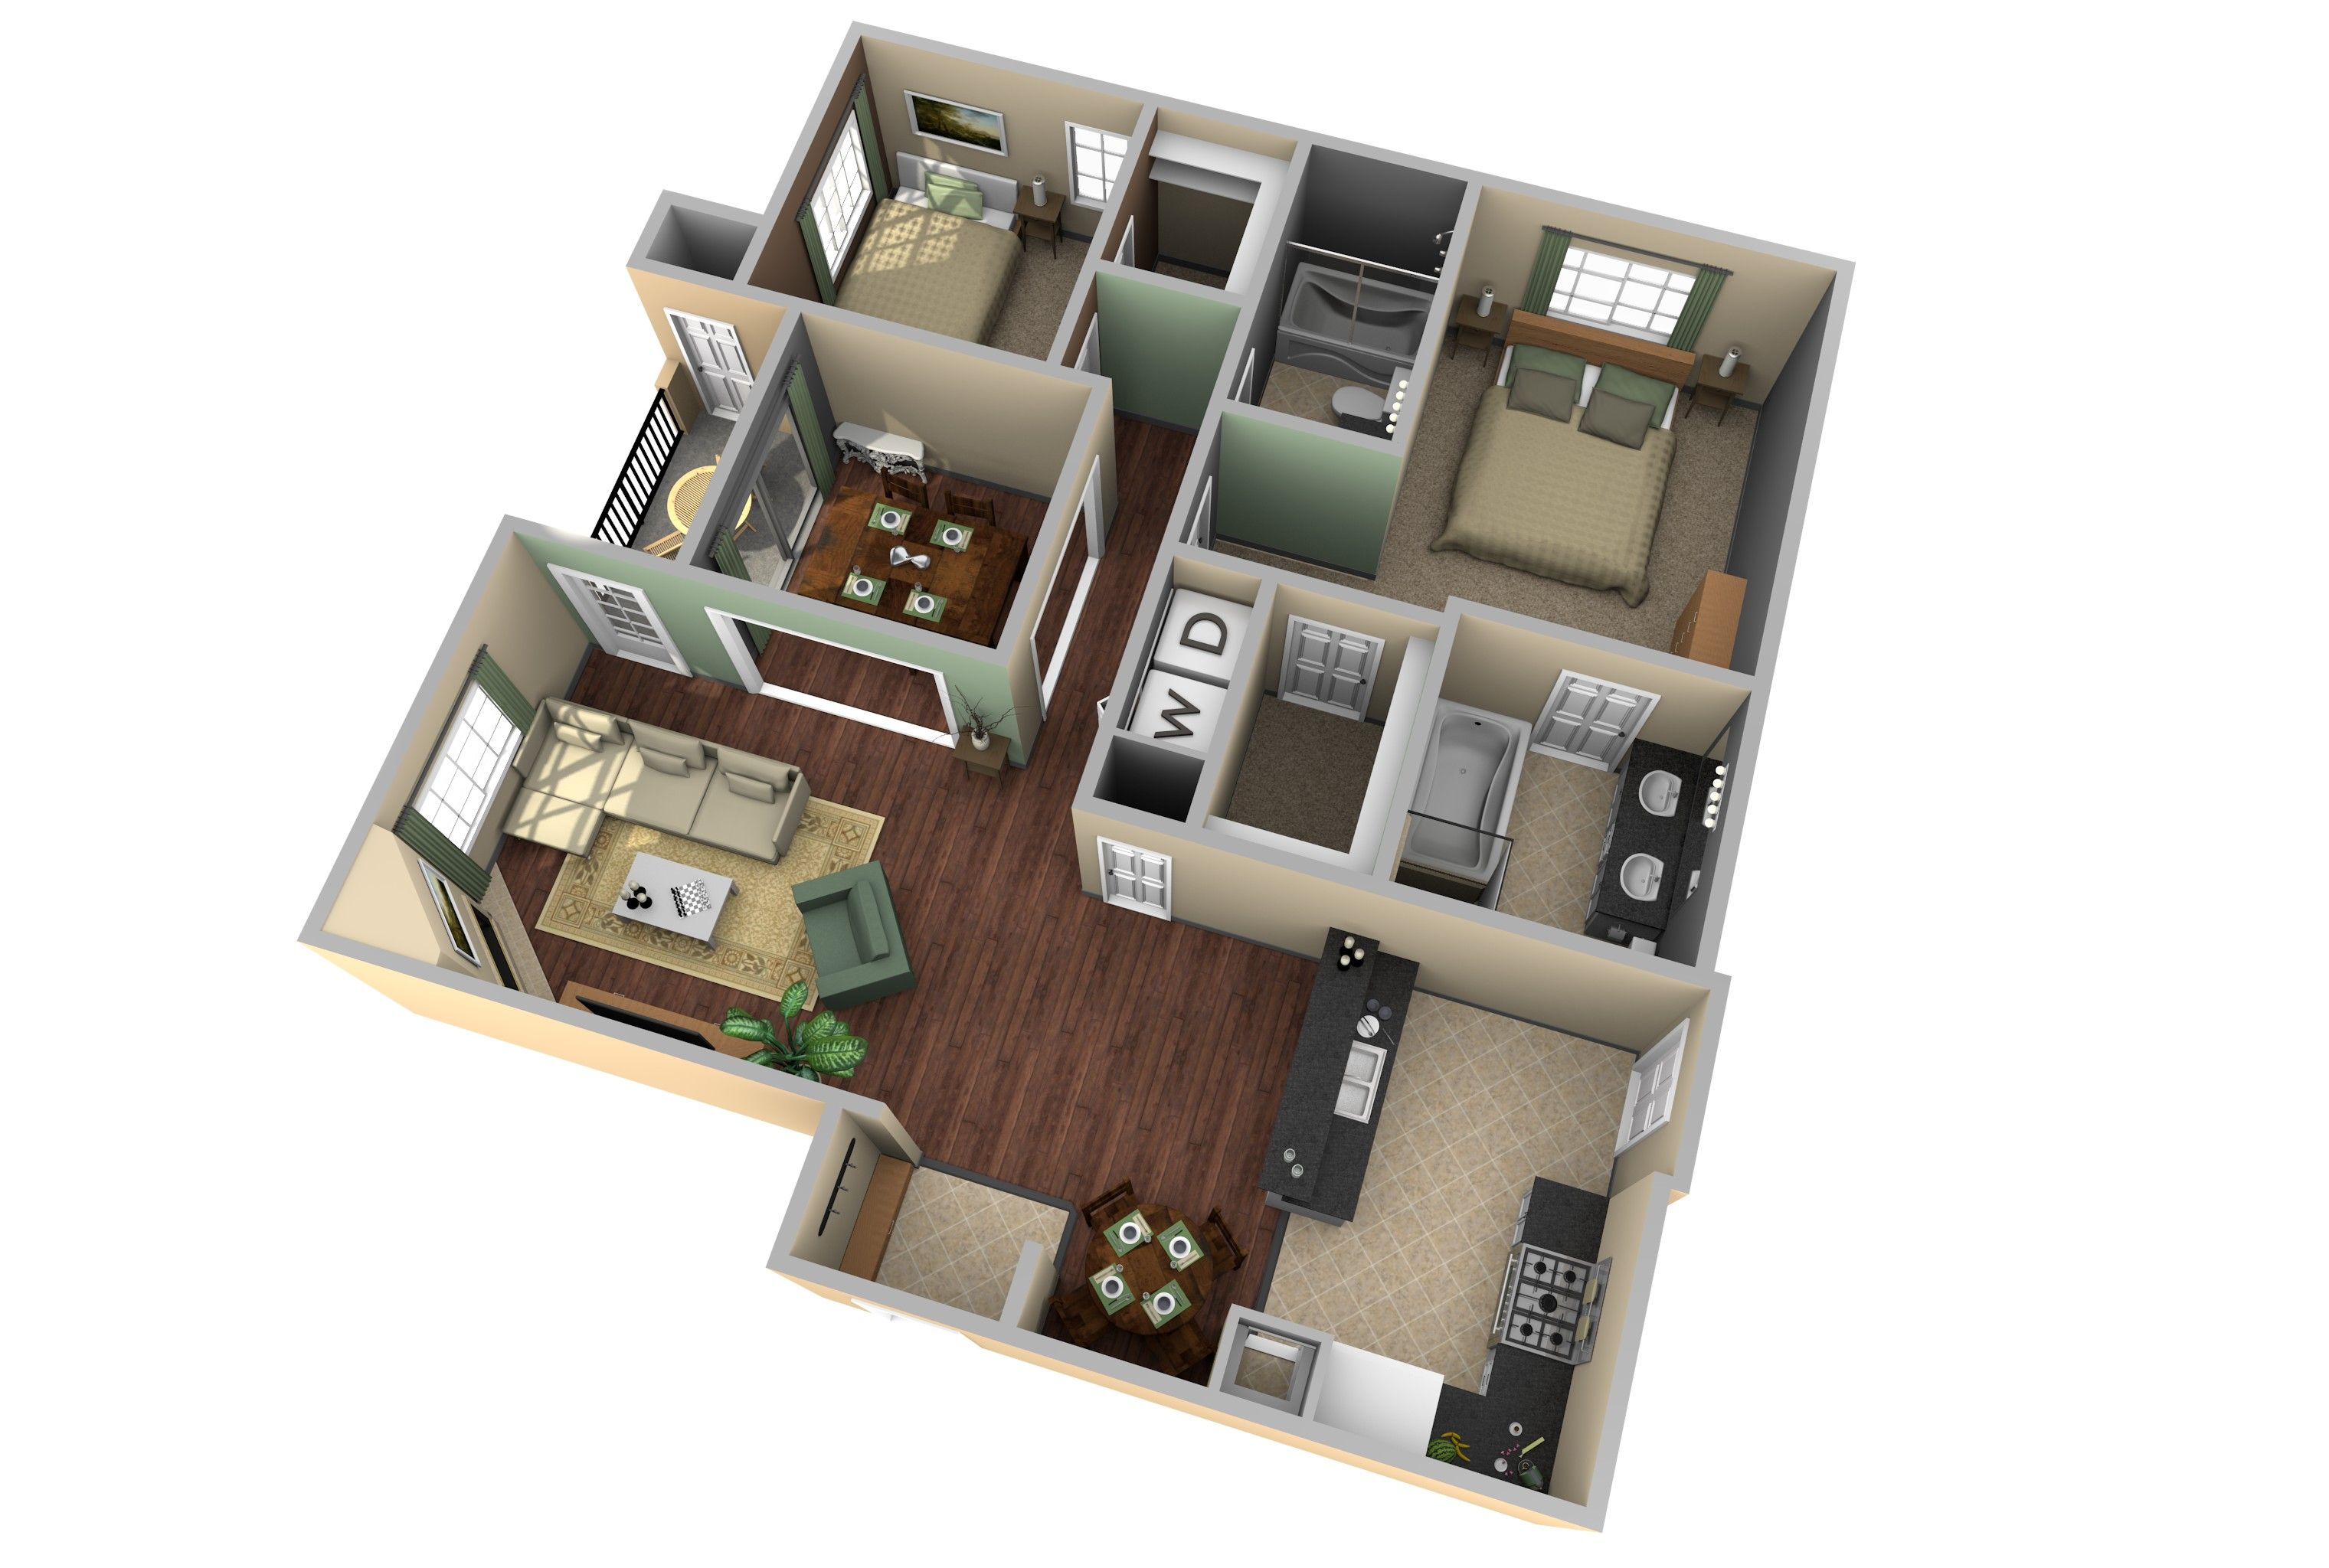 3 Bedroom House Plan With Photos Extraordinary House Designerraleigh kitchen cabinets